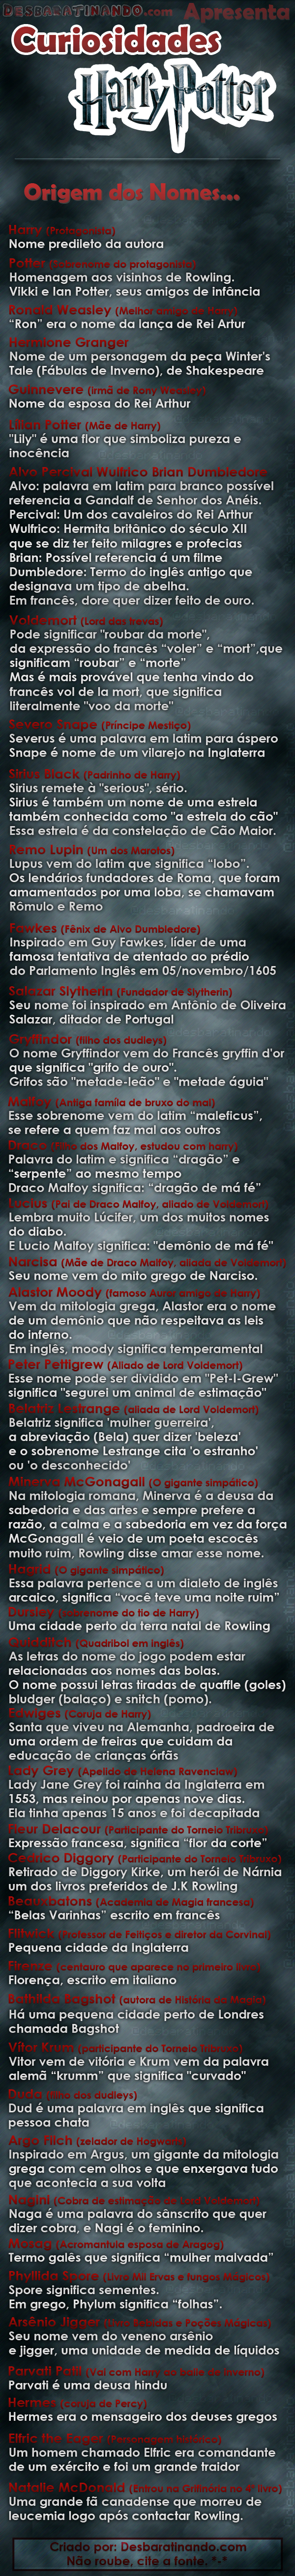 significado dos nomes harry potter albus alvo dumbledore hermione eon rony gina Malfoy draco sirius black lucius narcisa hagrid nagini lord voldemort belatrix Salazar Slytherin Remo Lupin Edwiges Fawkes Granger Fleur Delacour Snape